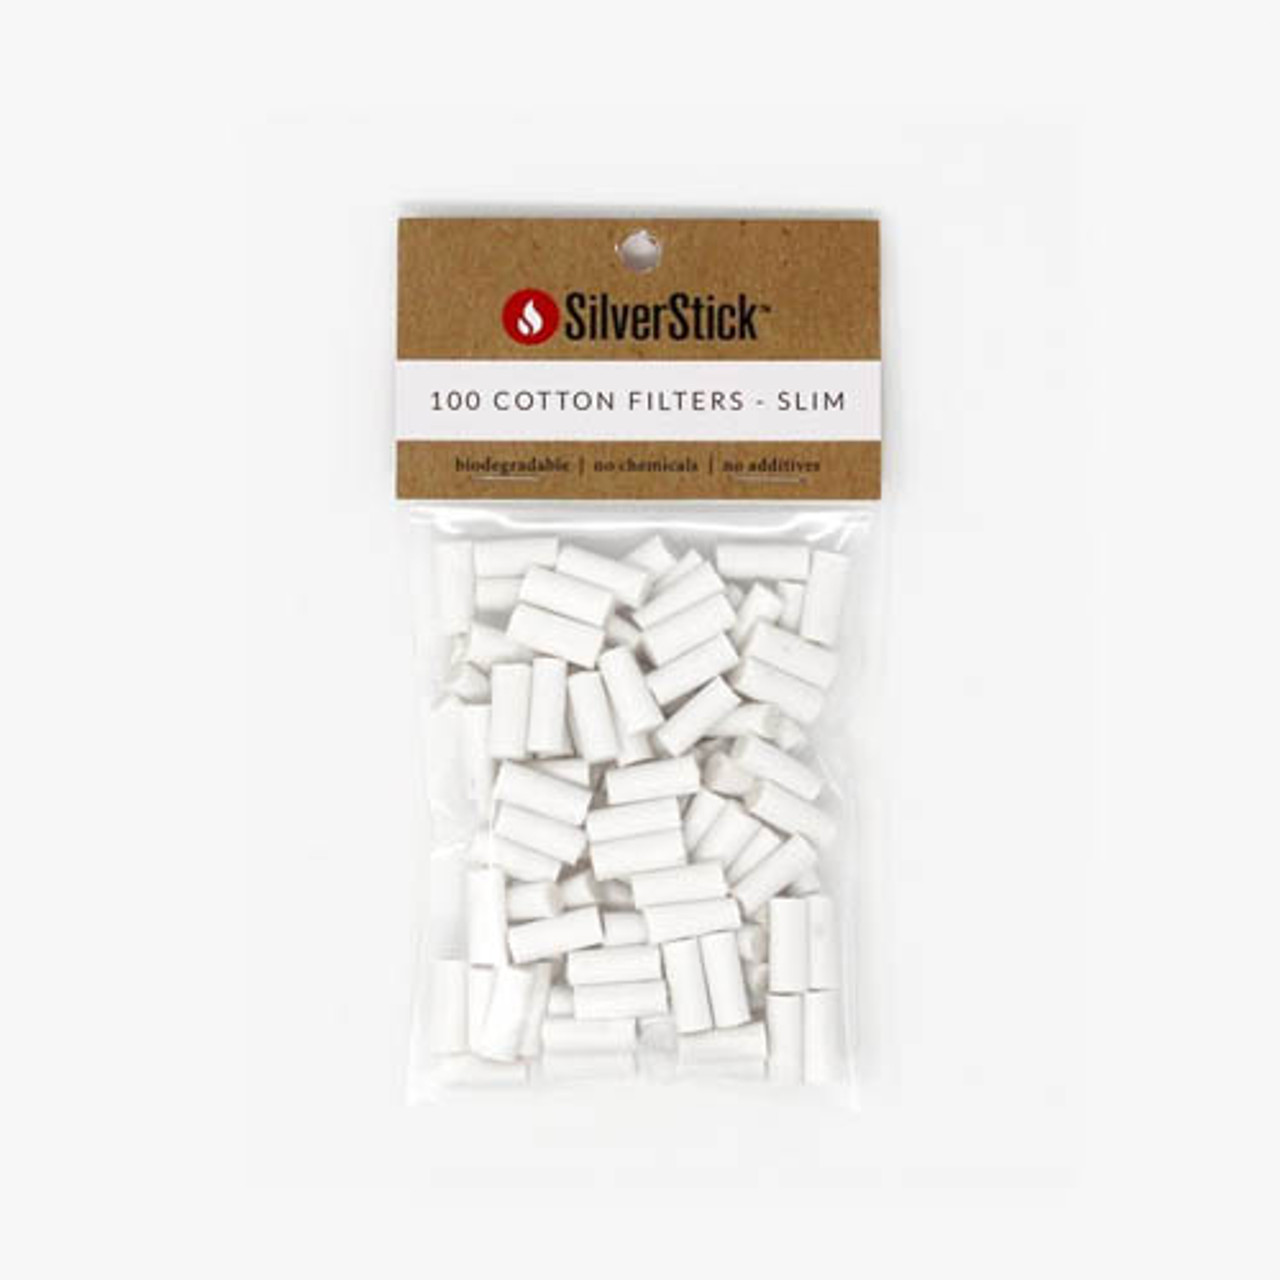 SilverStick Replacement Cotton Filters 100ct